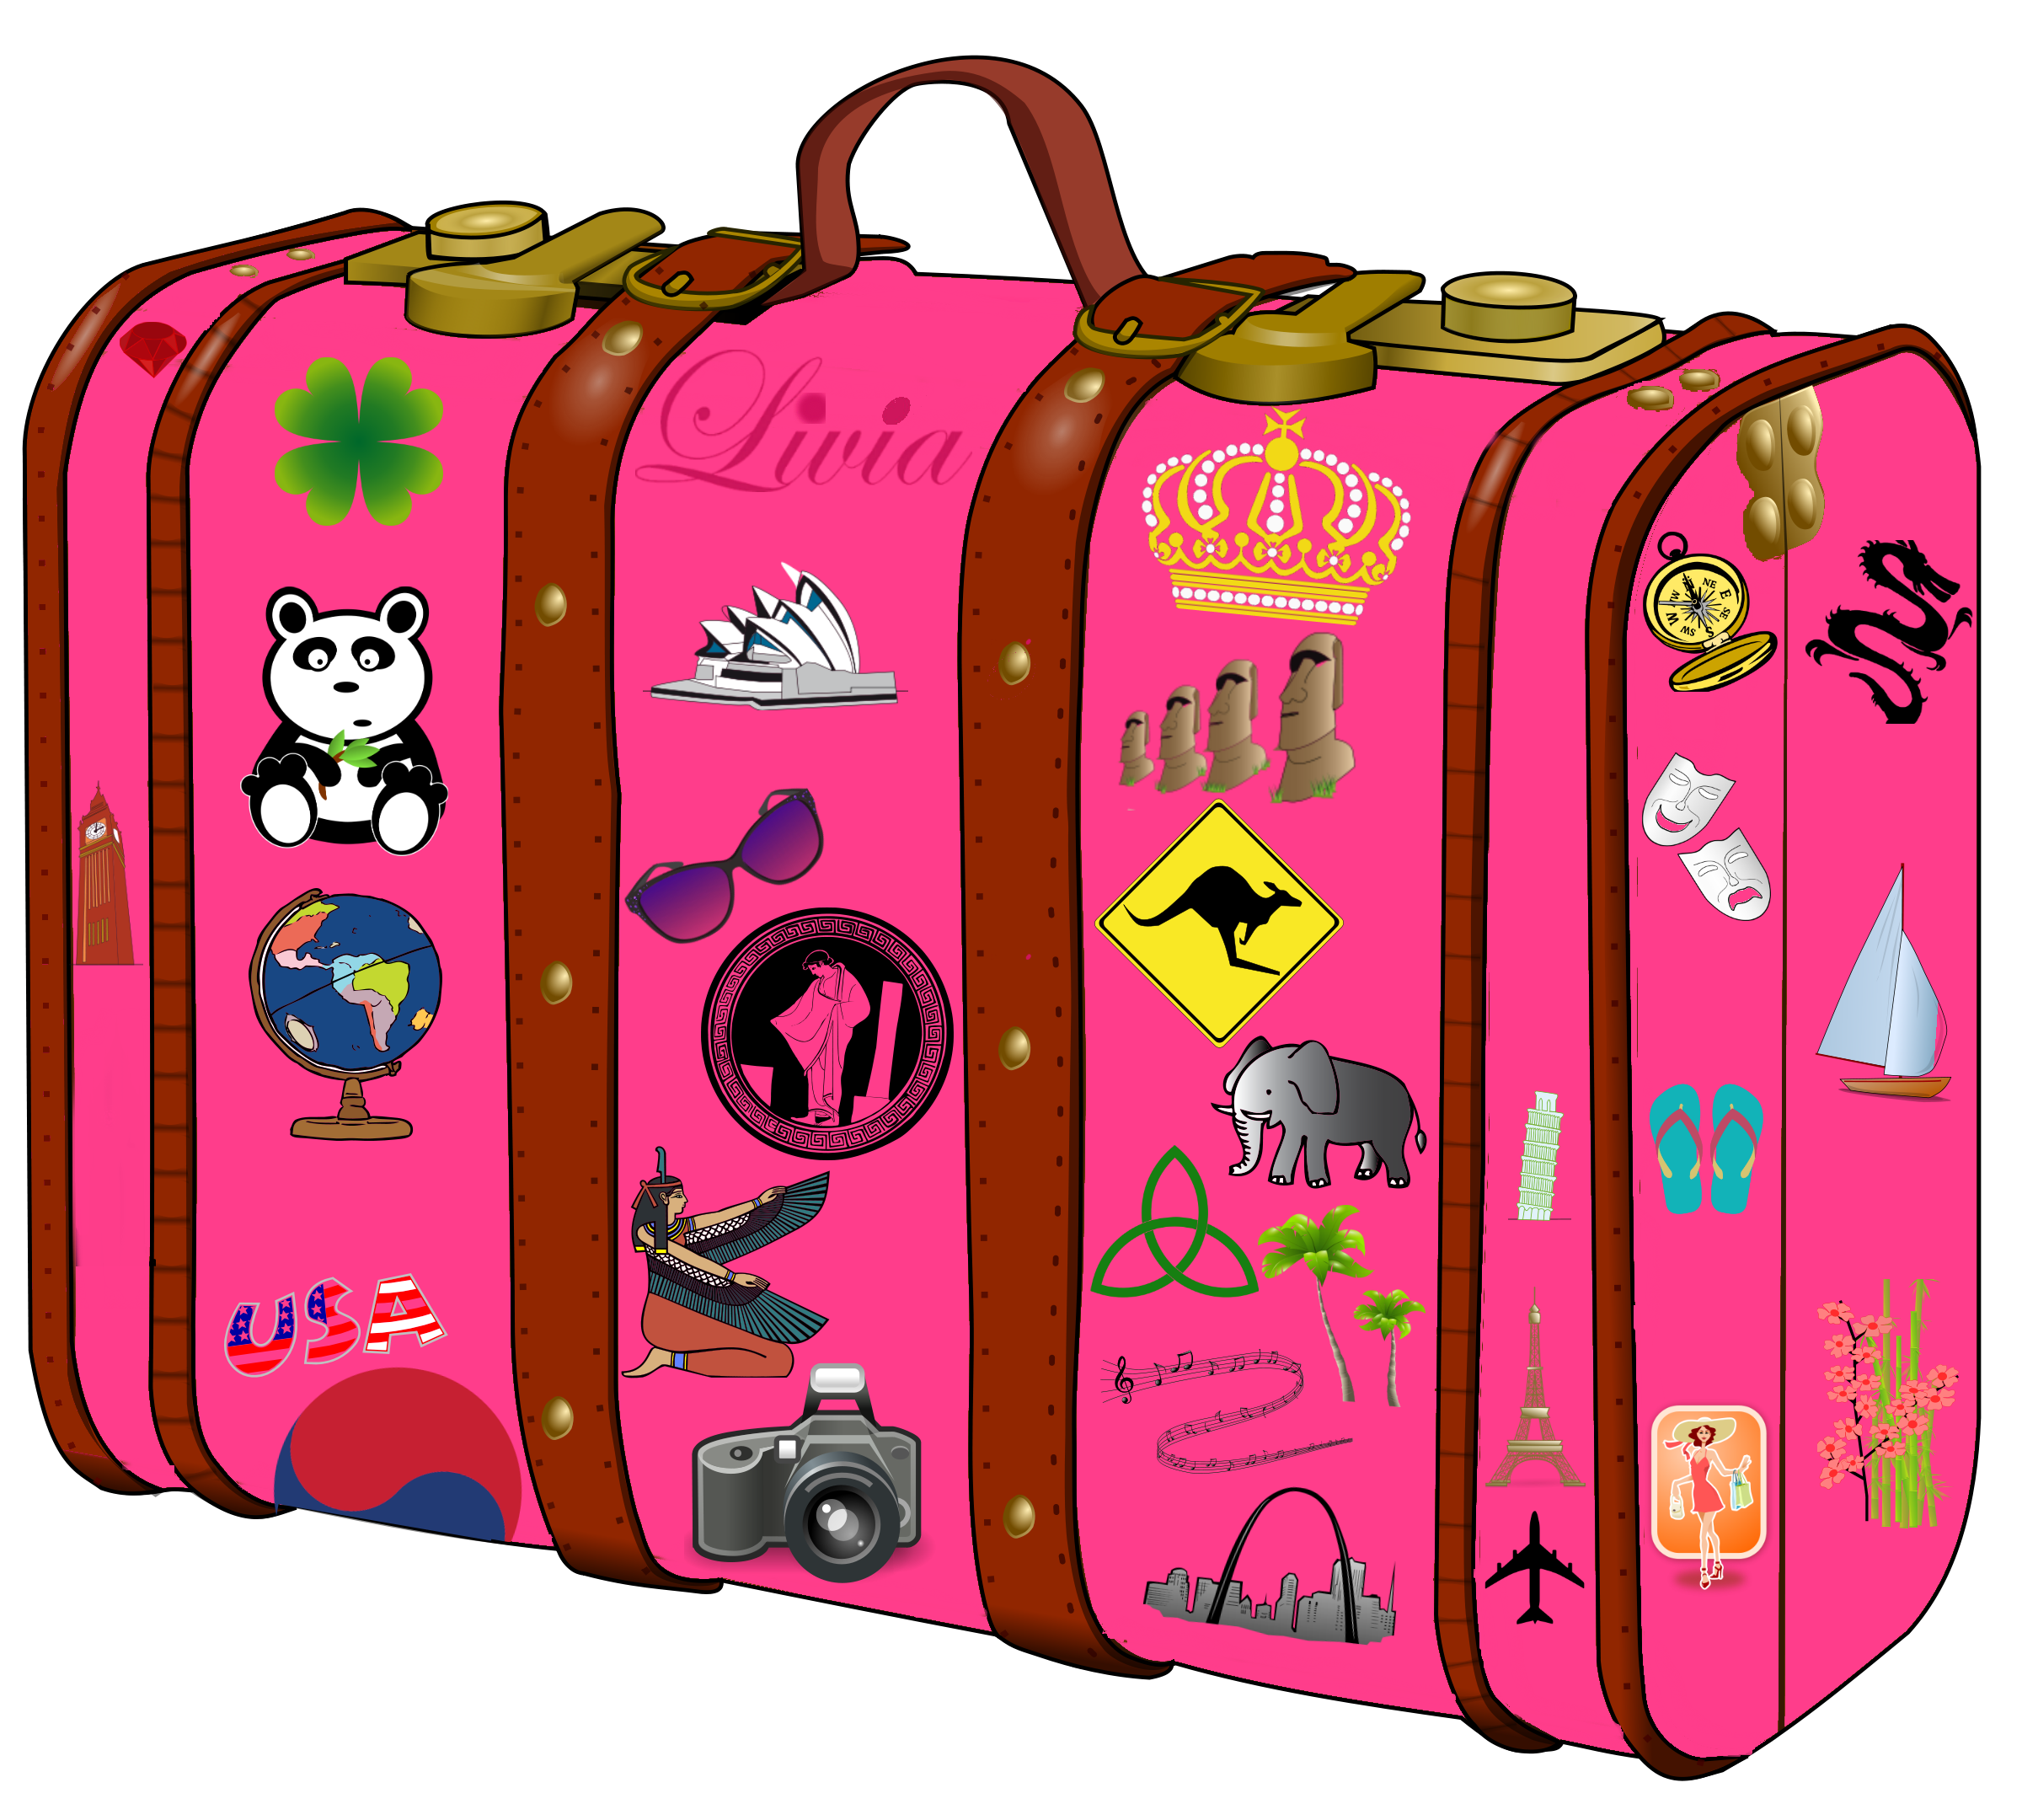 Lunchbox clipart suitcase. Pink pencil and in